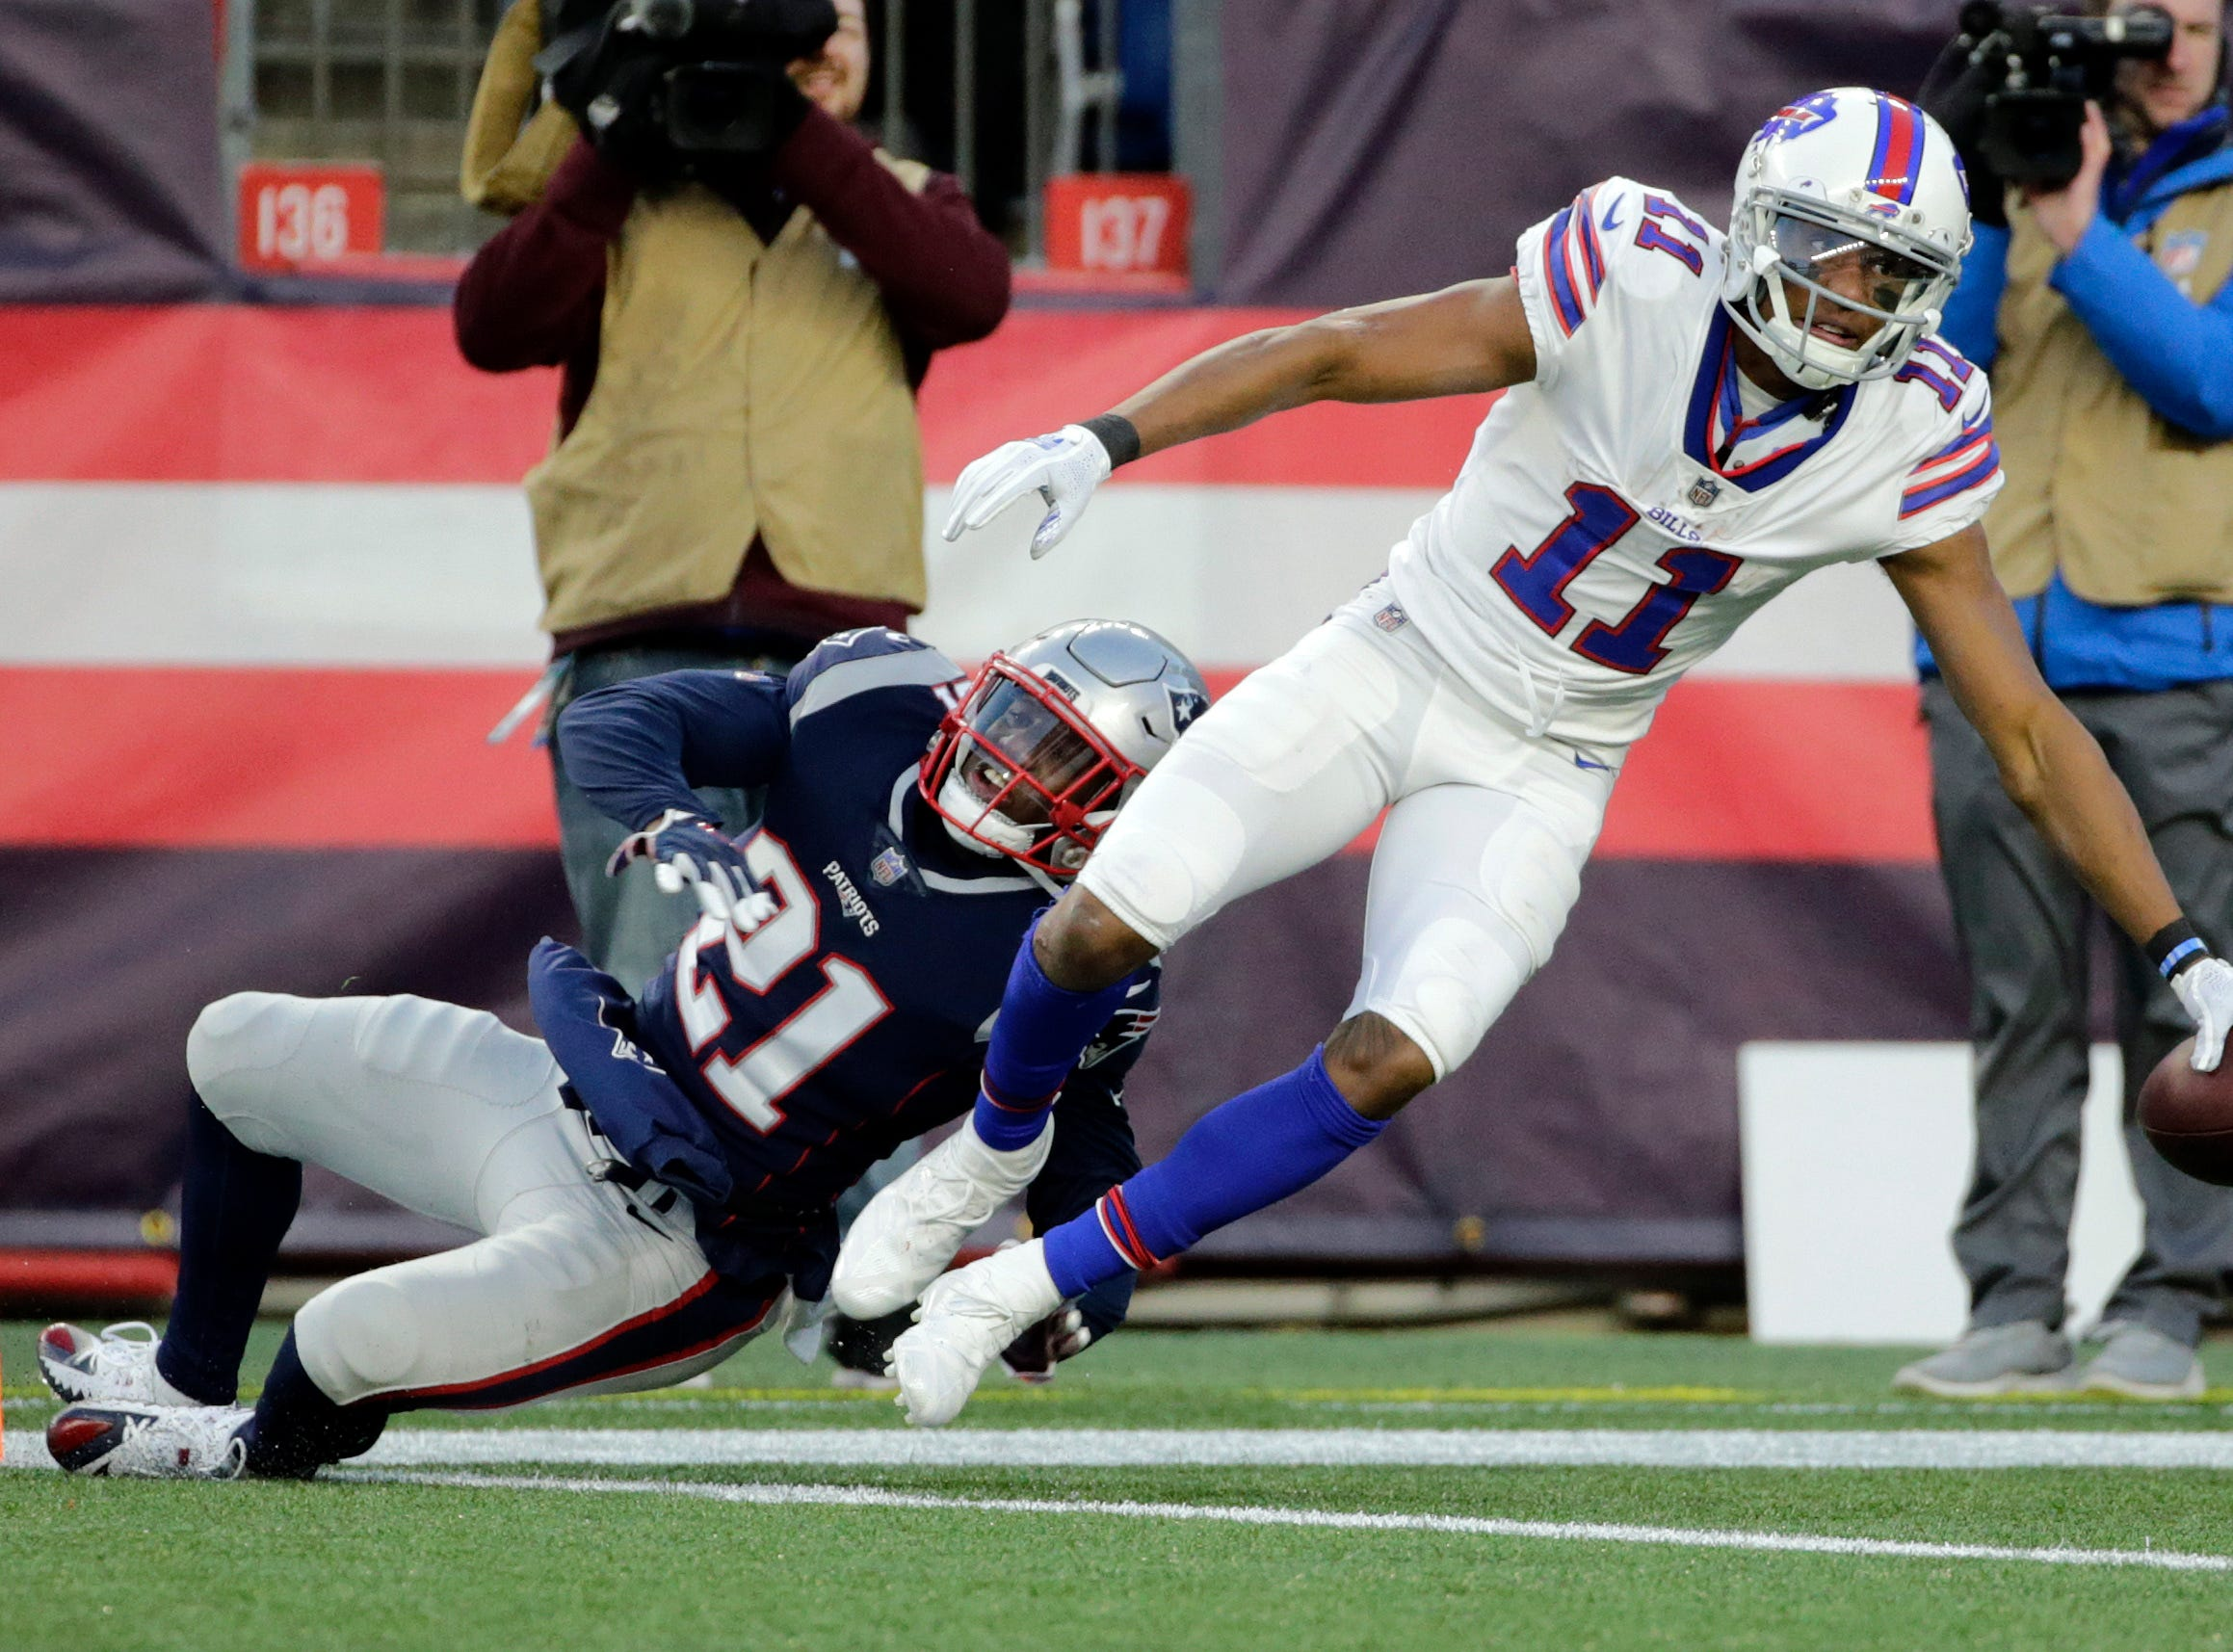 Buffalo Bills wide receiver Zay Jones (11) slips from the grasp of New England Patriots defensive back Duron Harmon (21) and reaches across the goal line for a touchdown during the second half of an NFL football game, Sunday, Dec. 23, 2018, in Foxborough, Mass. (AP Photo/Elise Amendola)